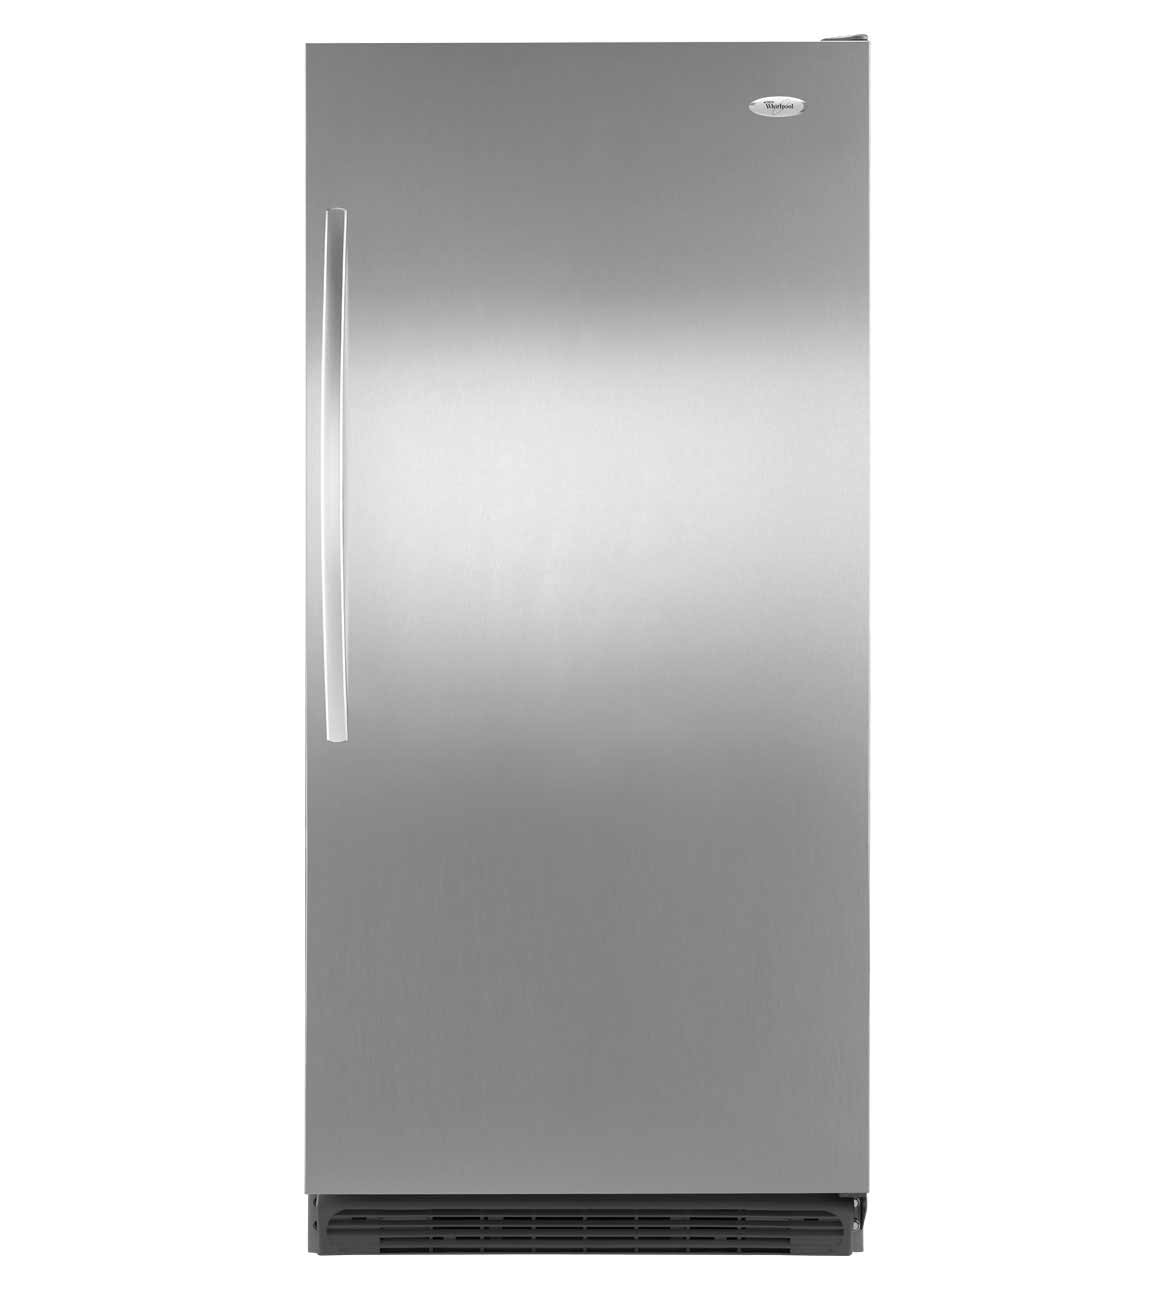 Whirlpool 6 Door Bins All Refrigerator in Silver